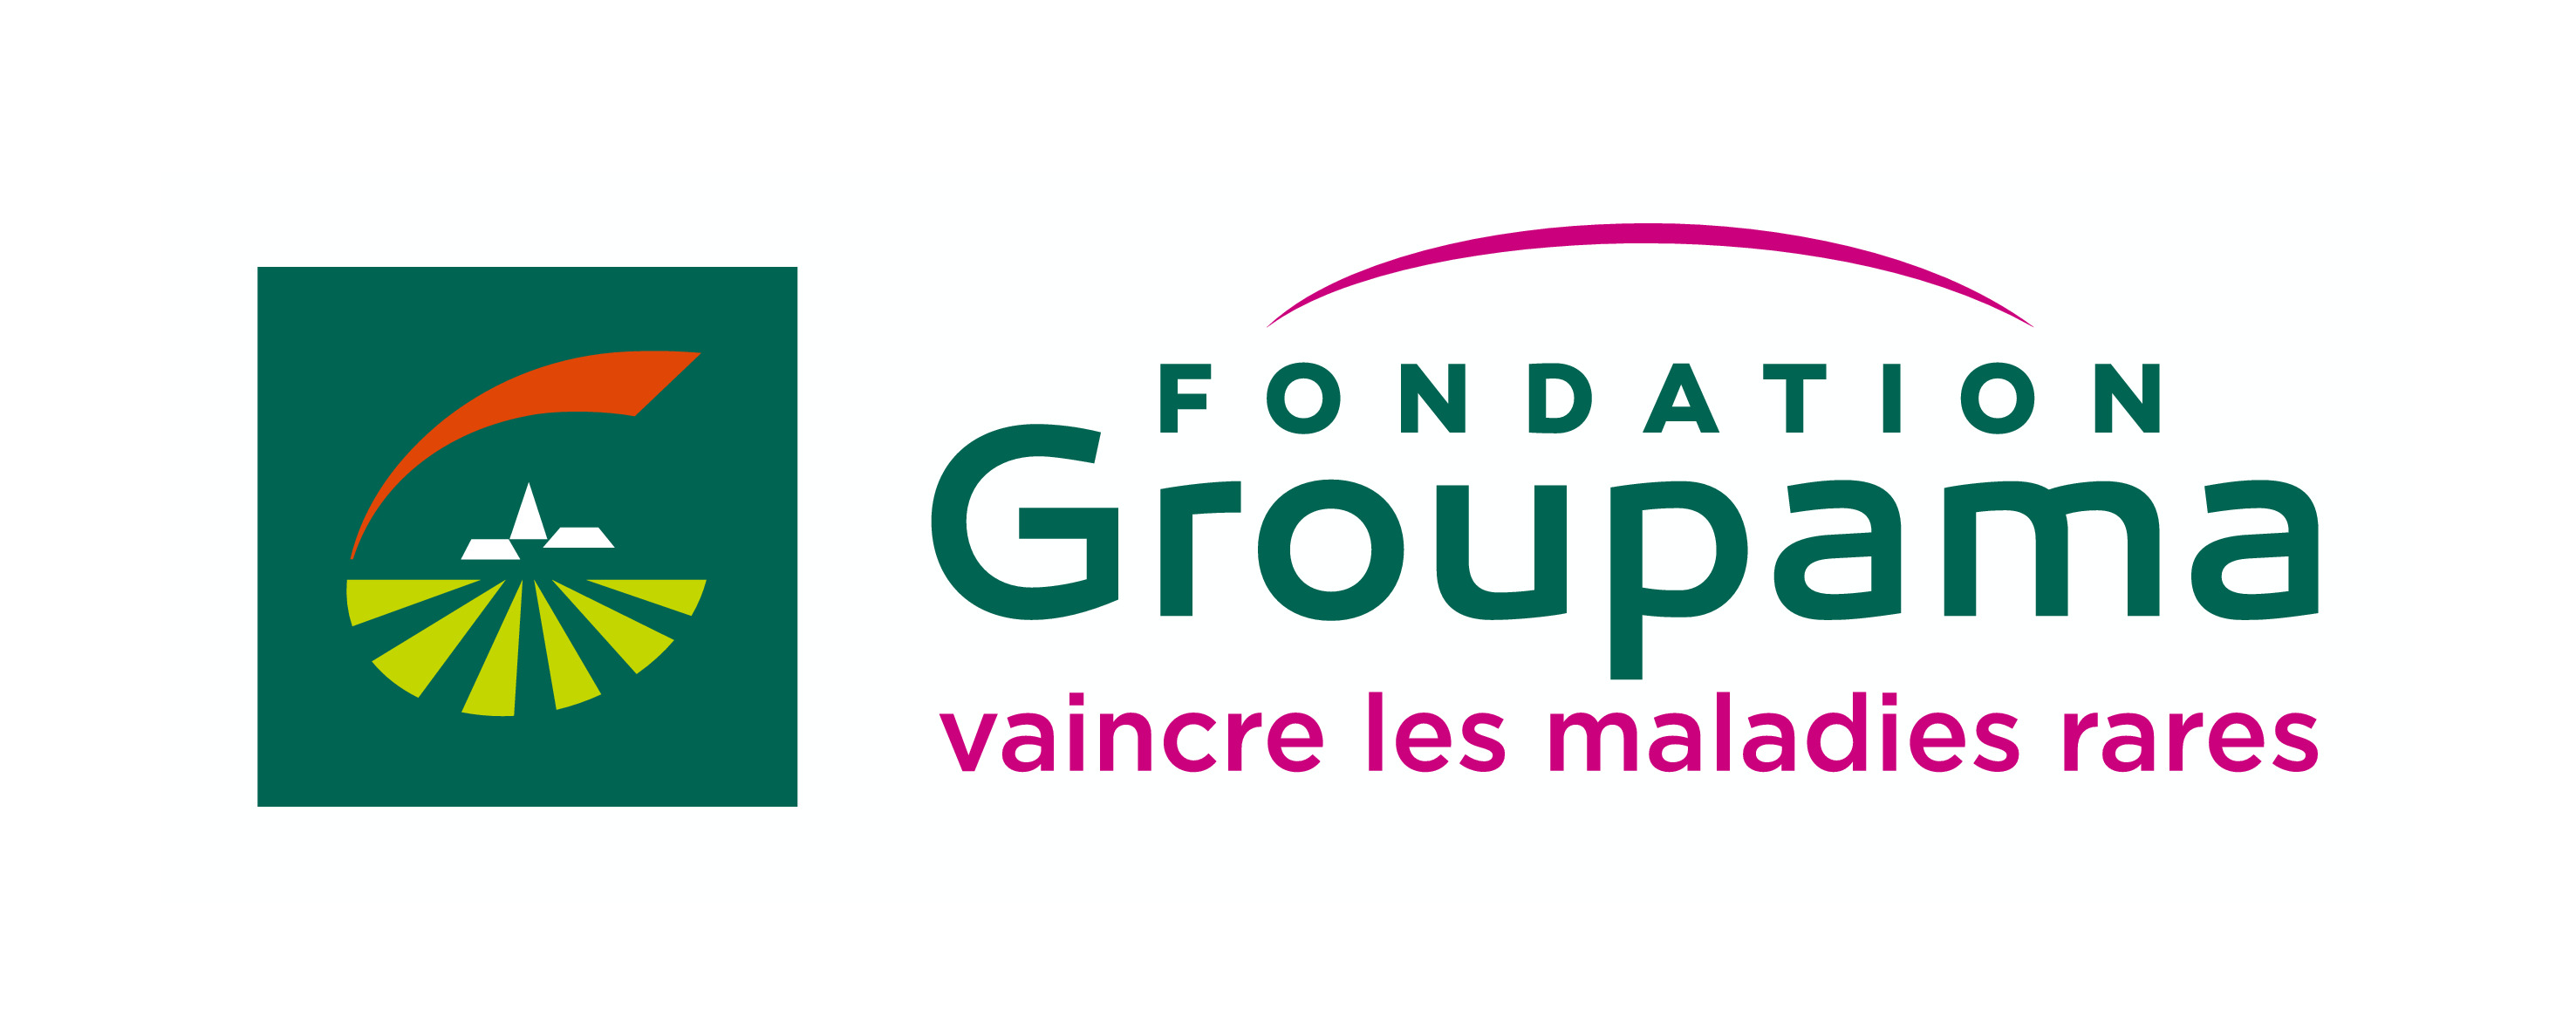 FB fondation groupama Pantone